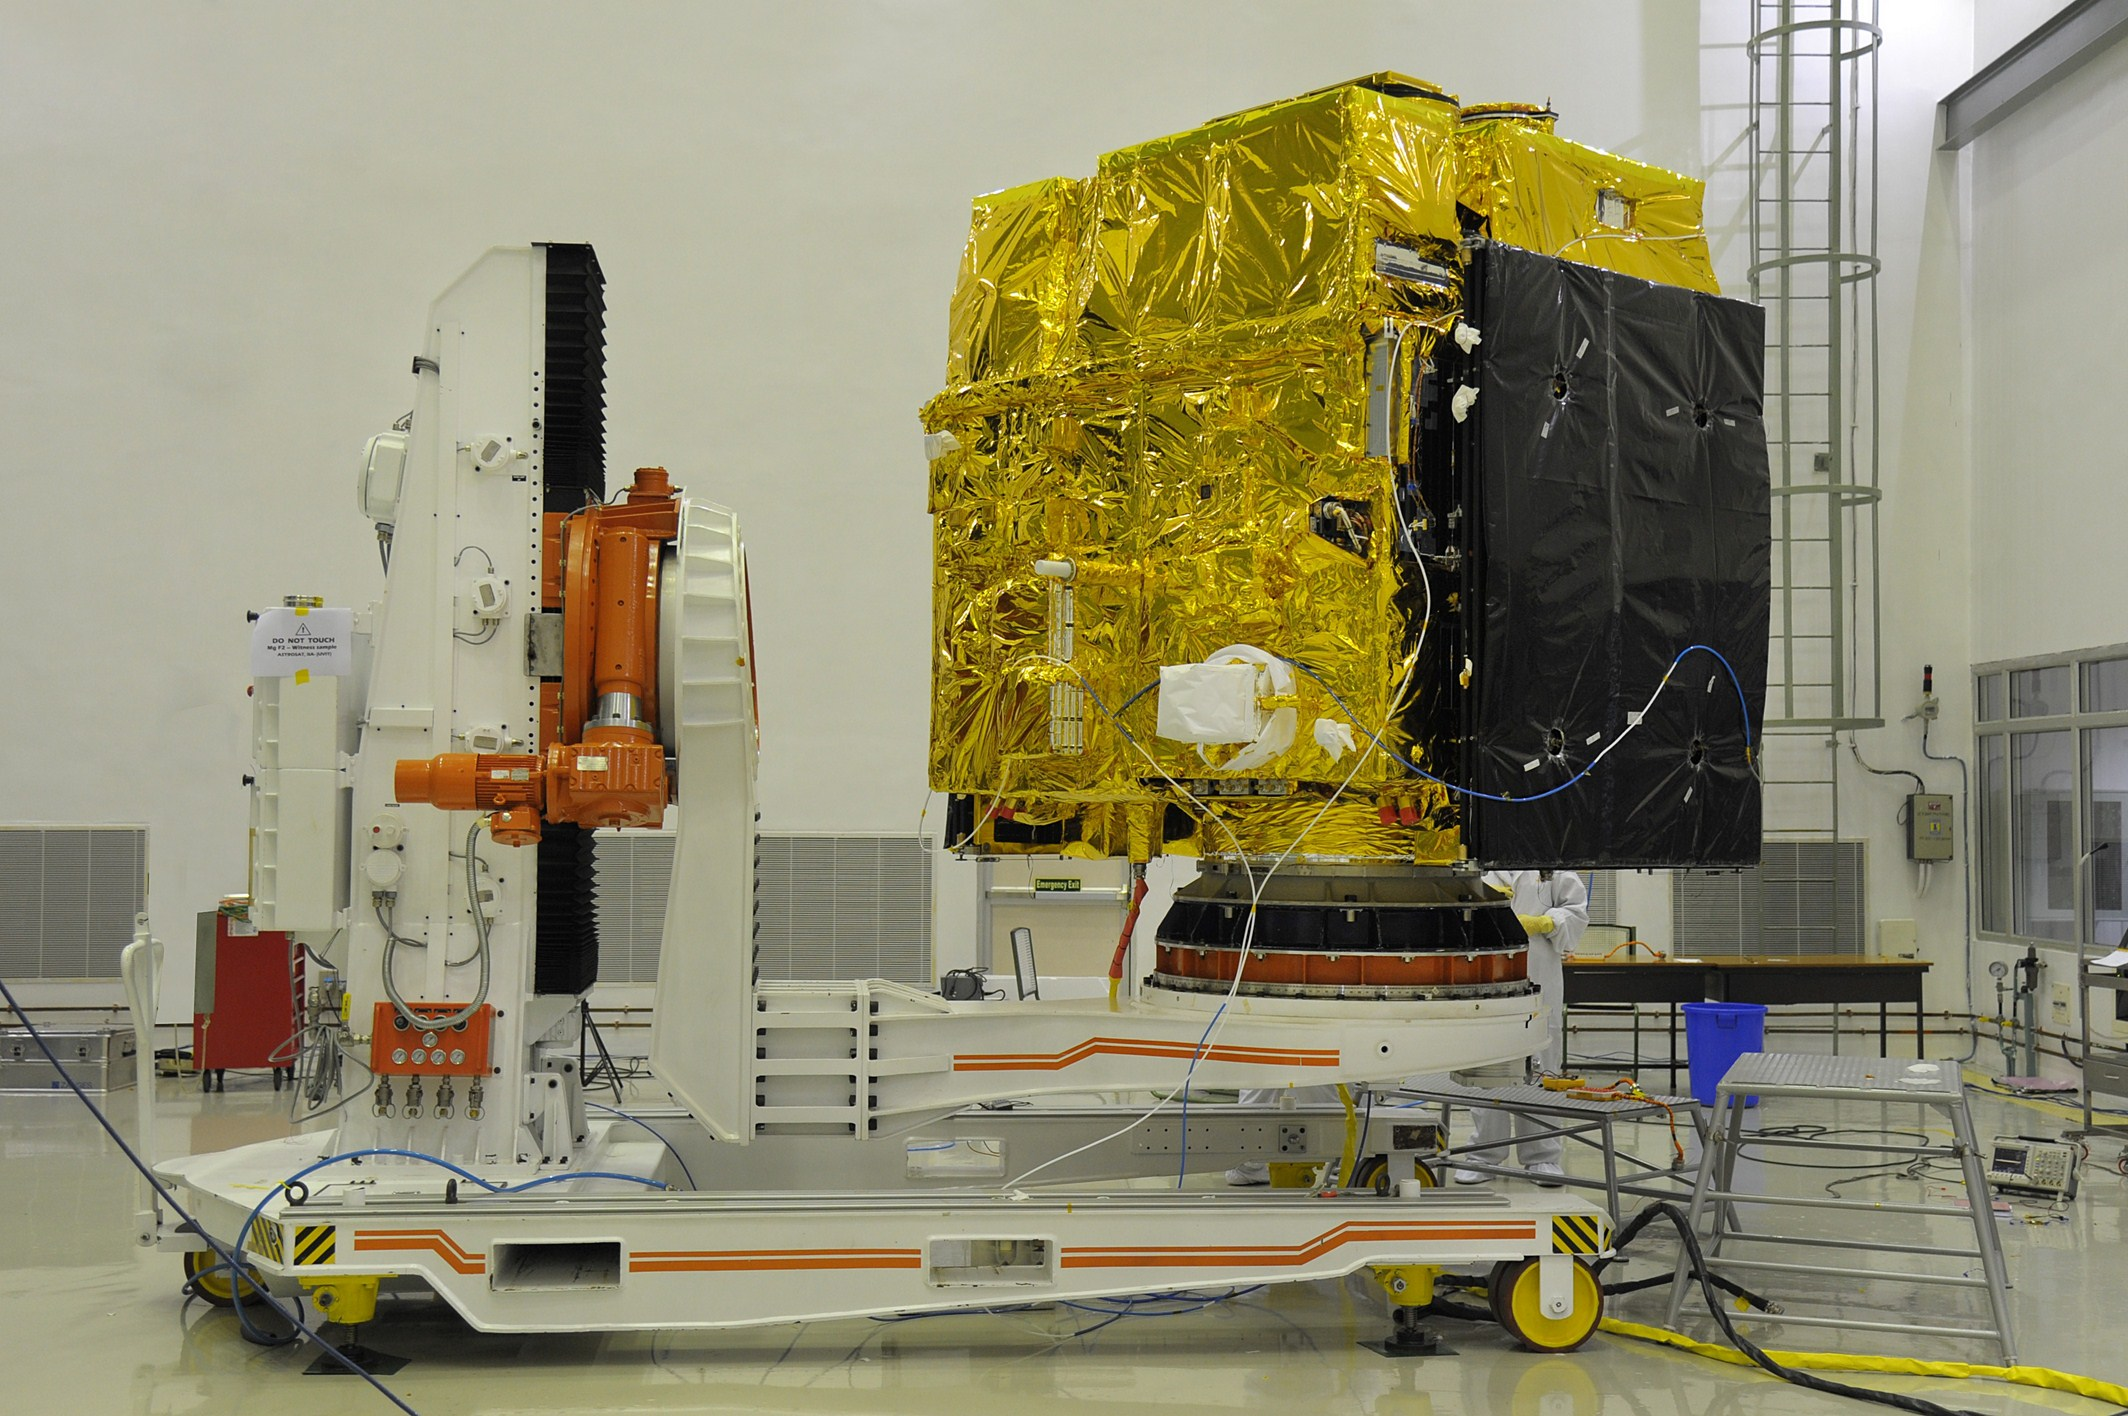 Astrosat during a pre-launch test in a clean room.